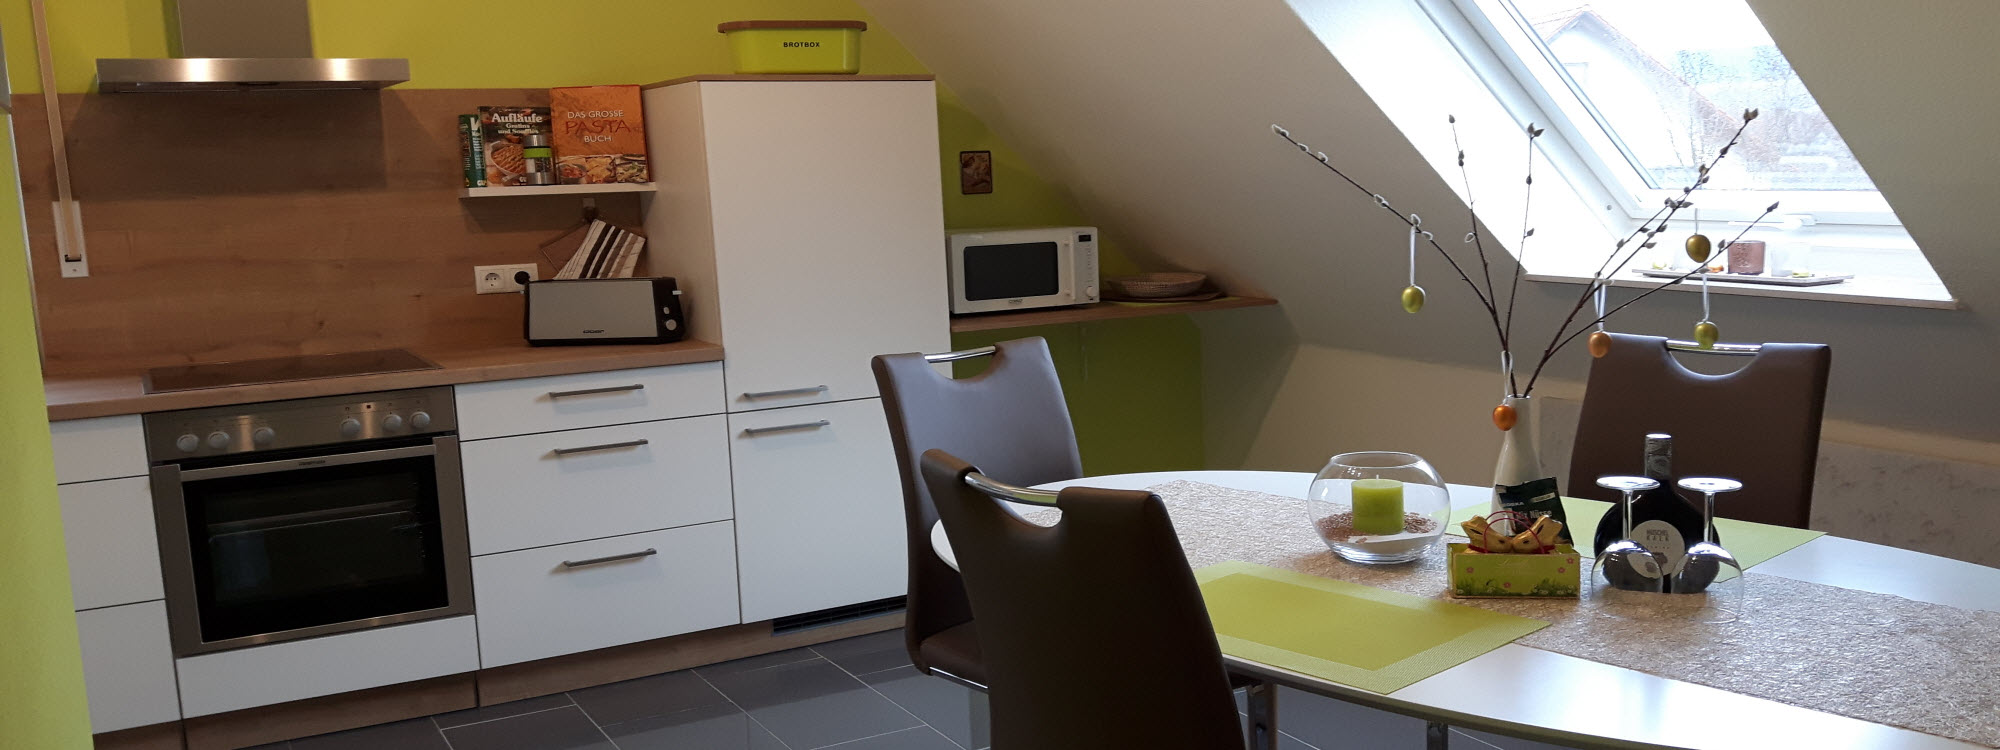 Holiday apartment close to Bamberg